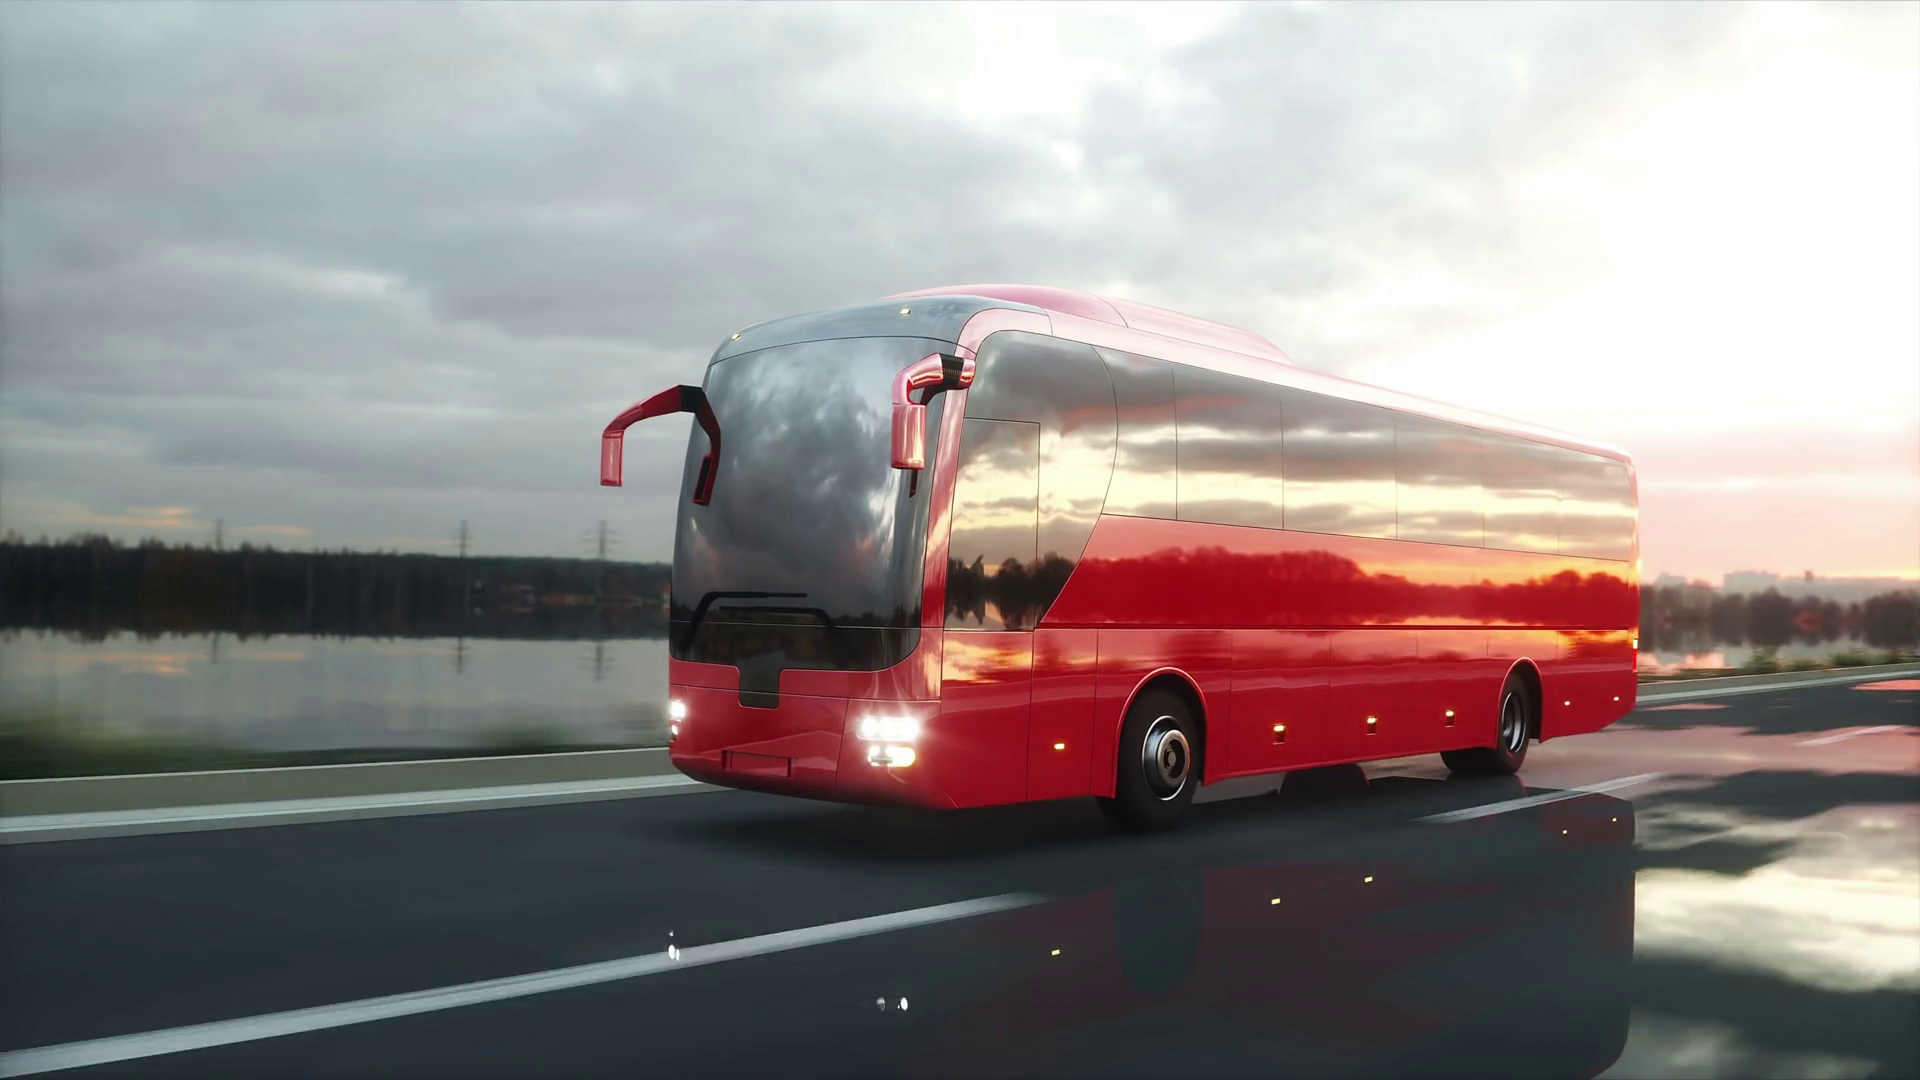 Videoblocks Tourist Red Bus On The Road Highway Very Fast Driving Touristic And Travel Concept Realistic 4k Animation Htvefmwkb Thumbnail Full01